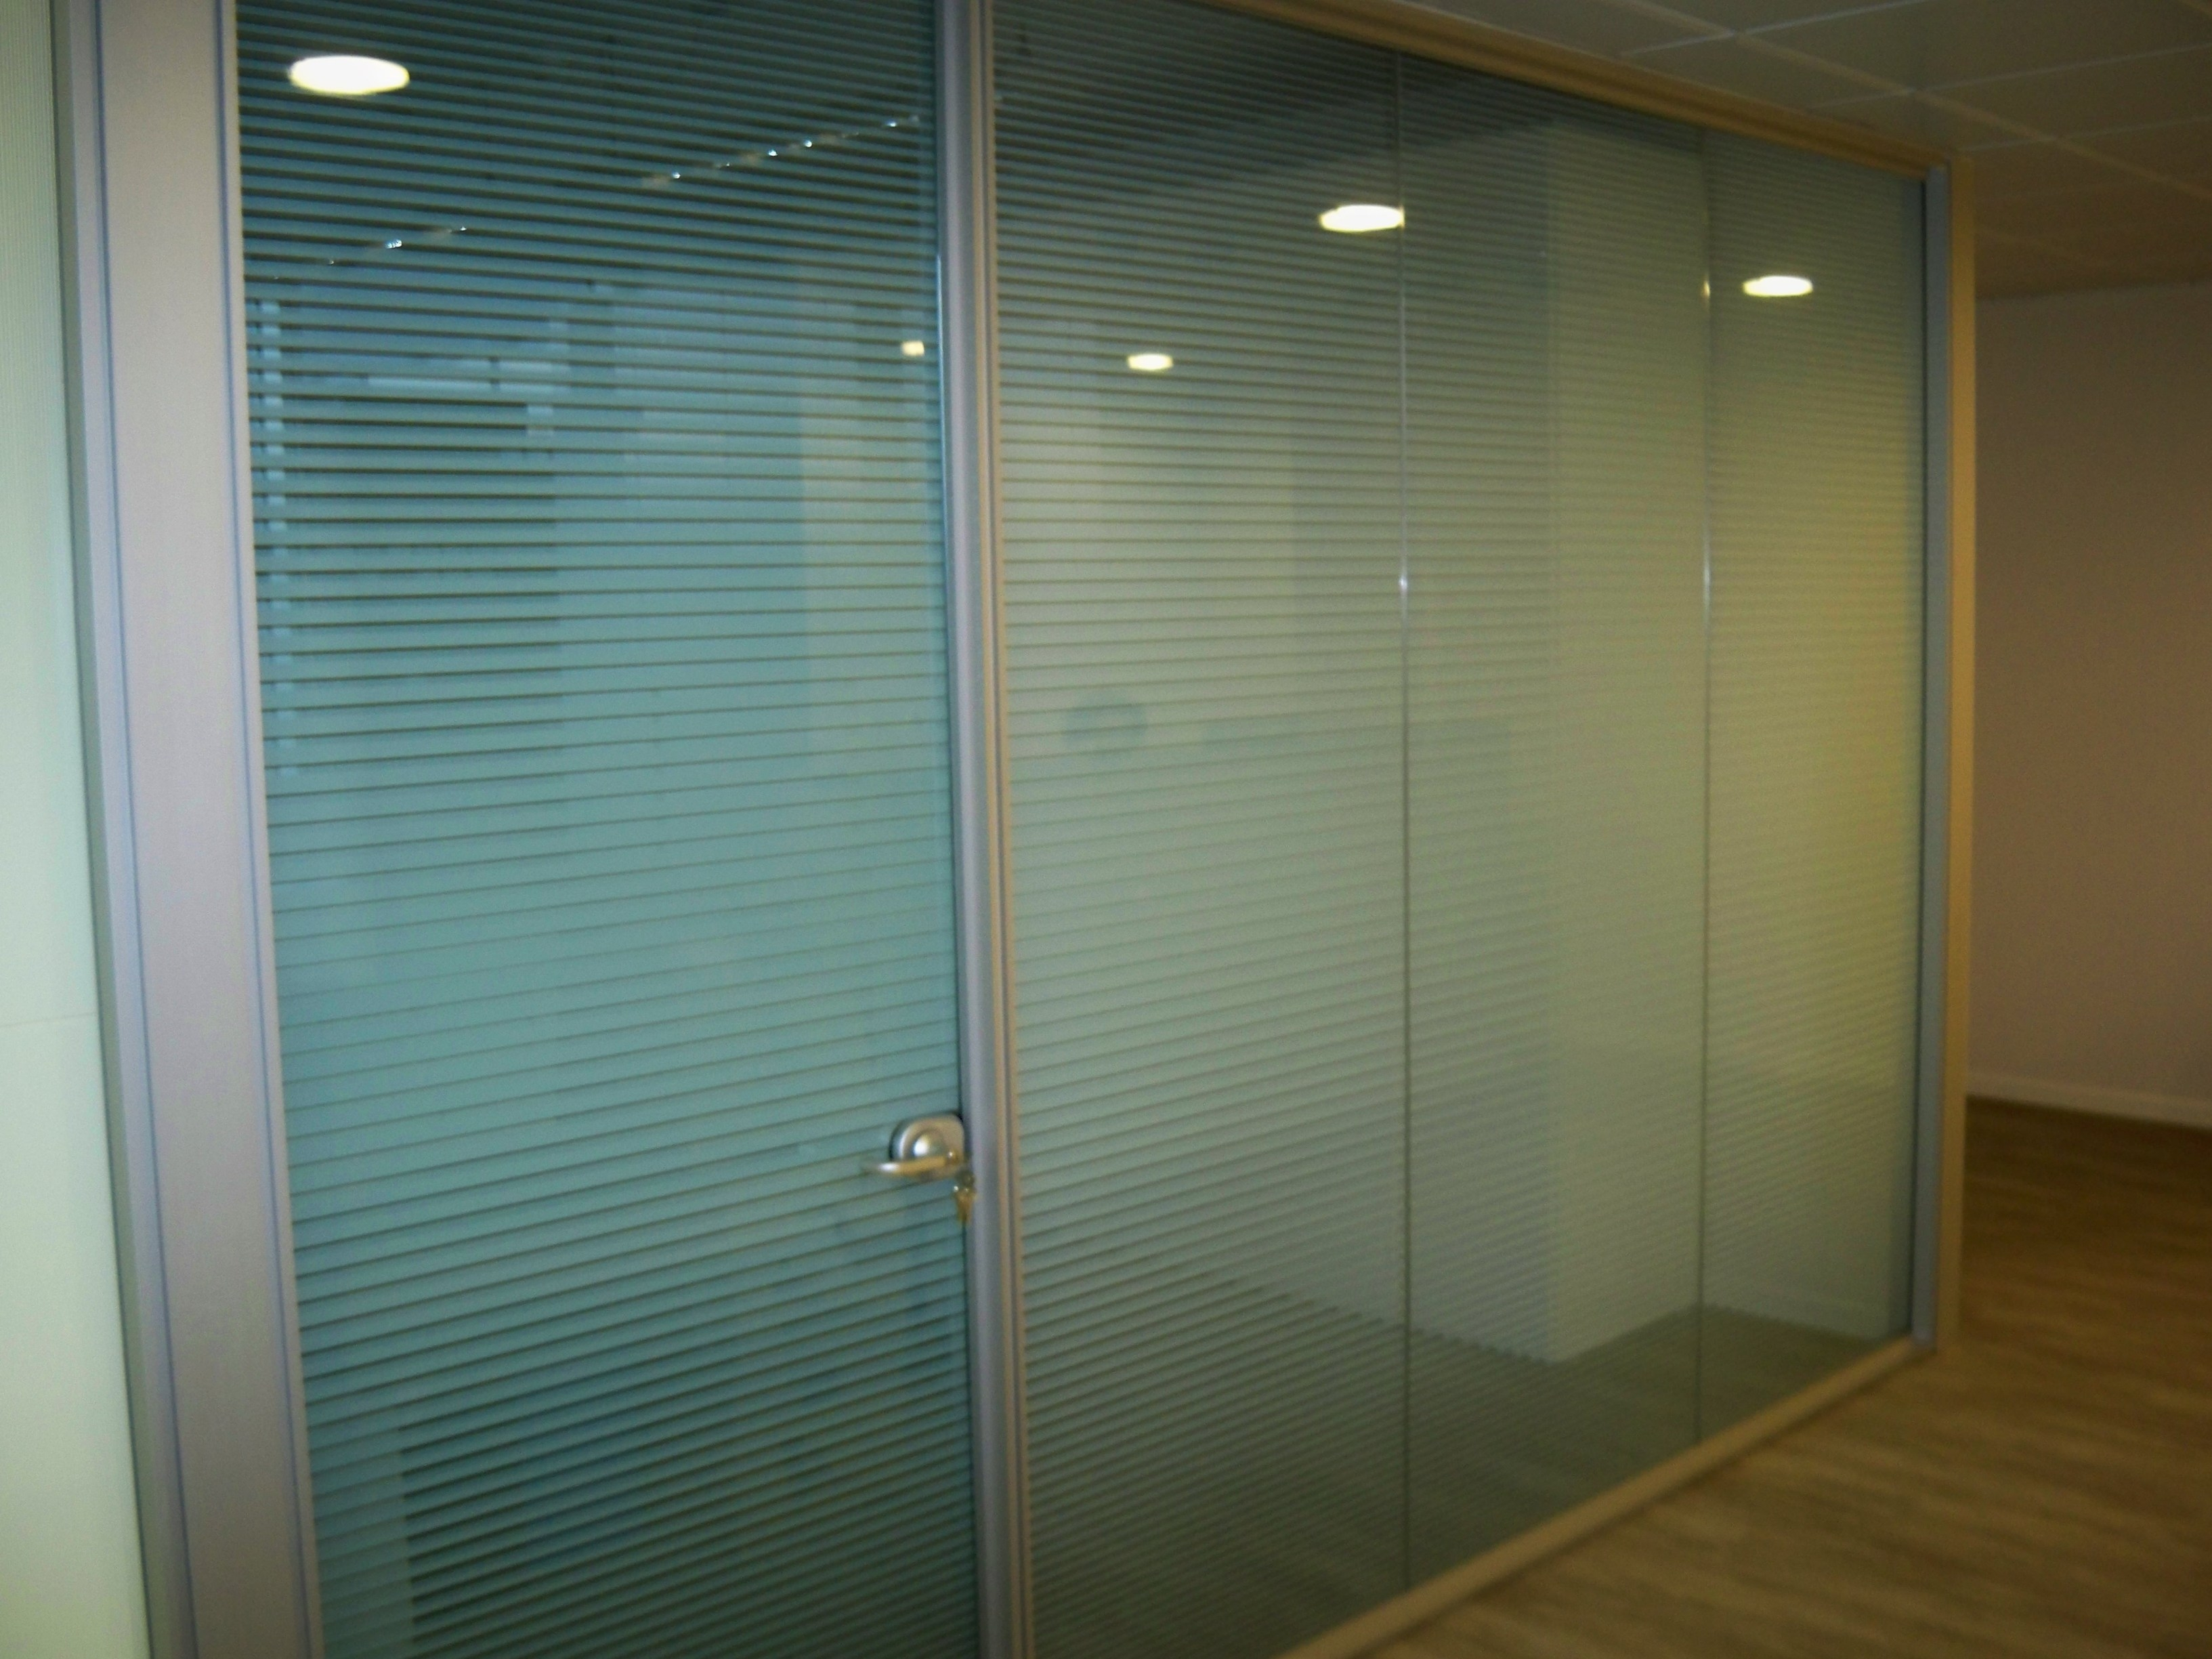 3m Shower Door Film